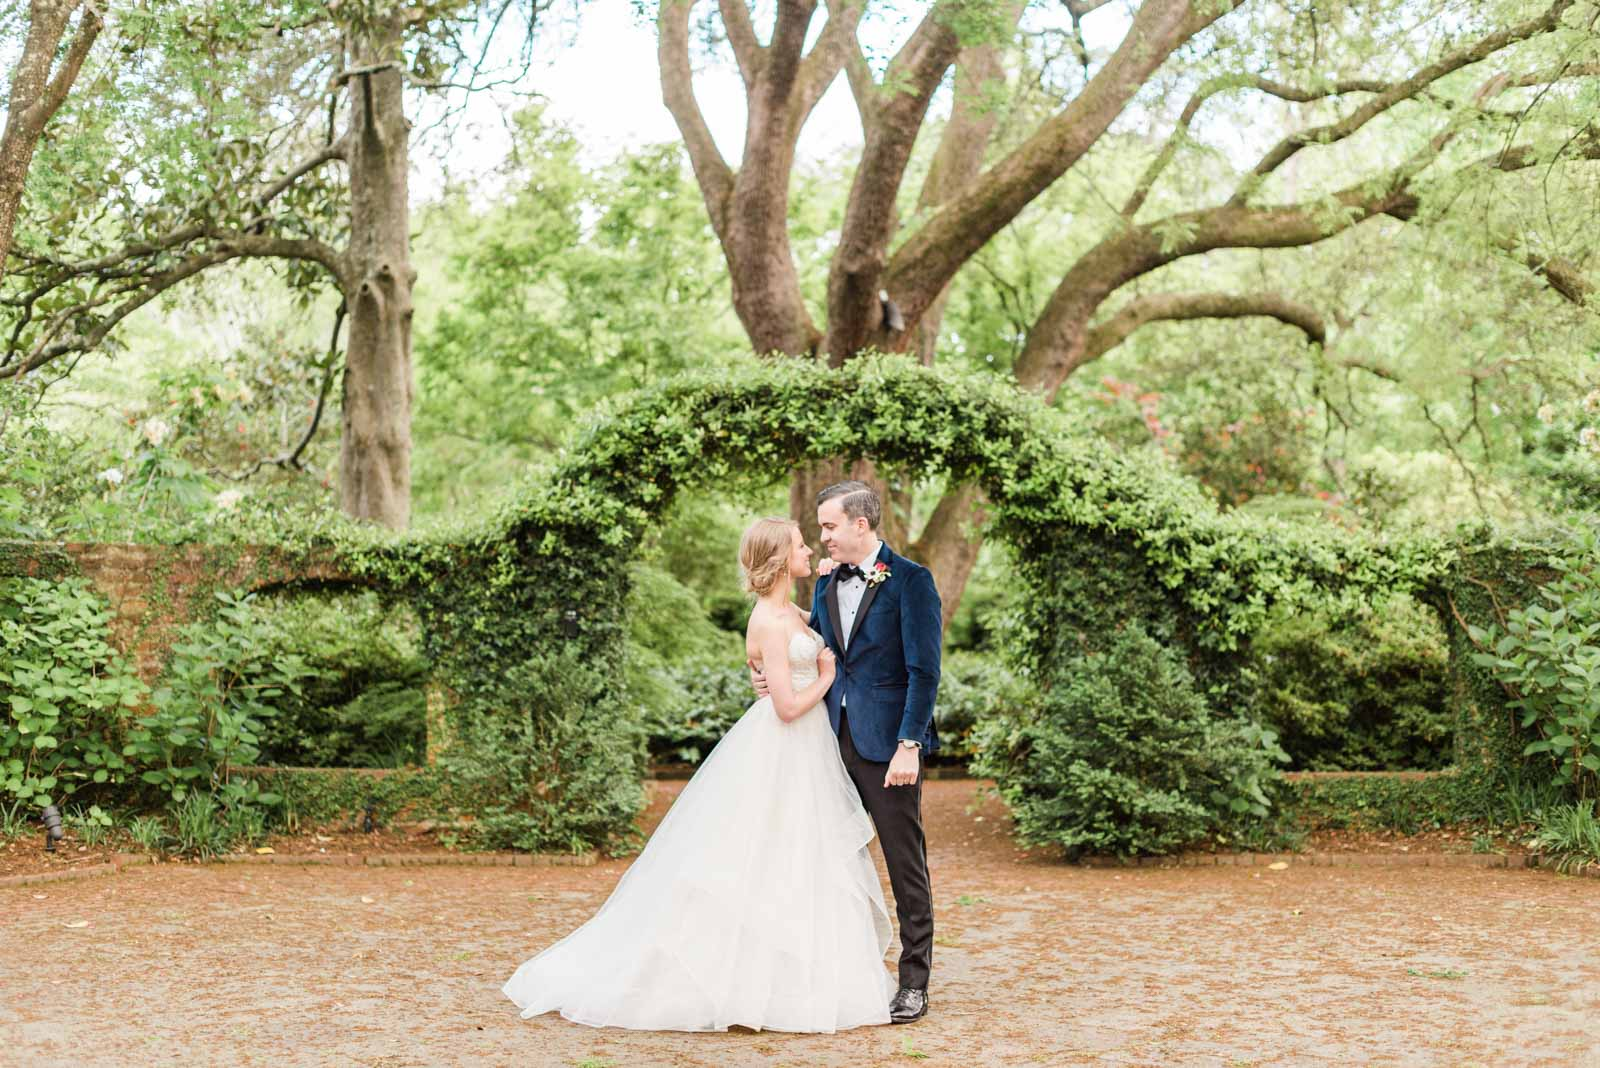 South Carolina Lace House Wedding Markie Walden Photography-62.jpg